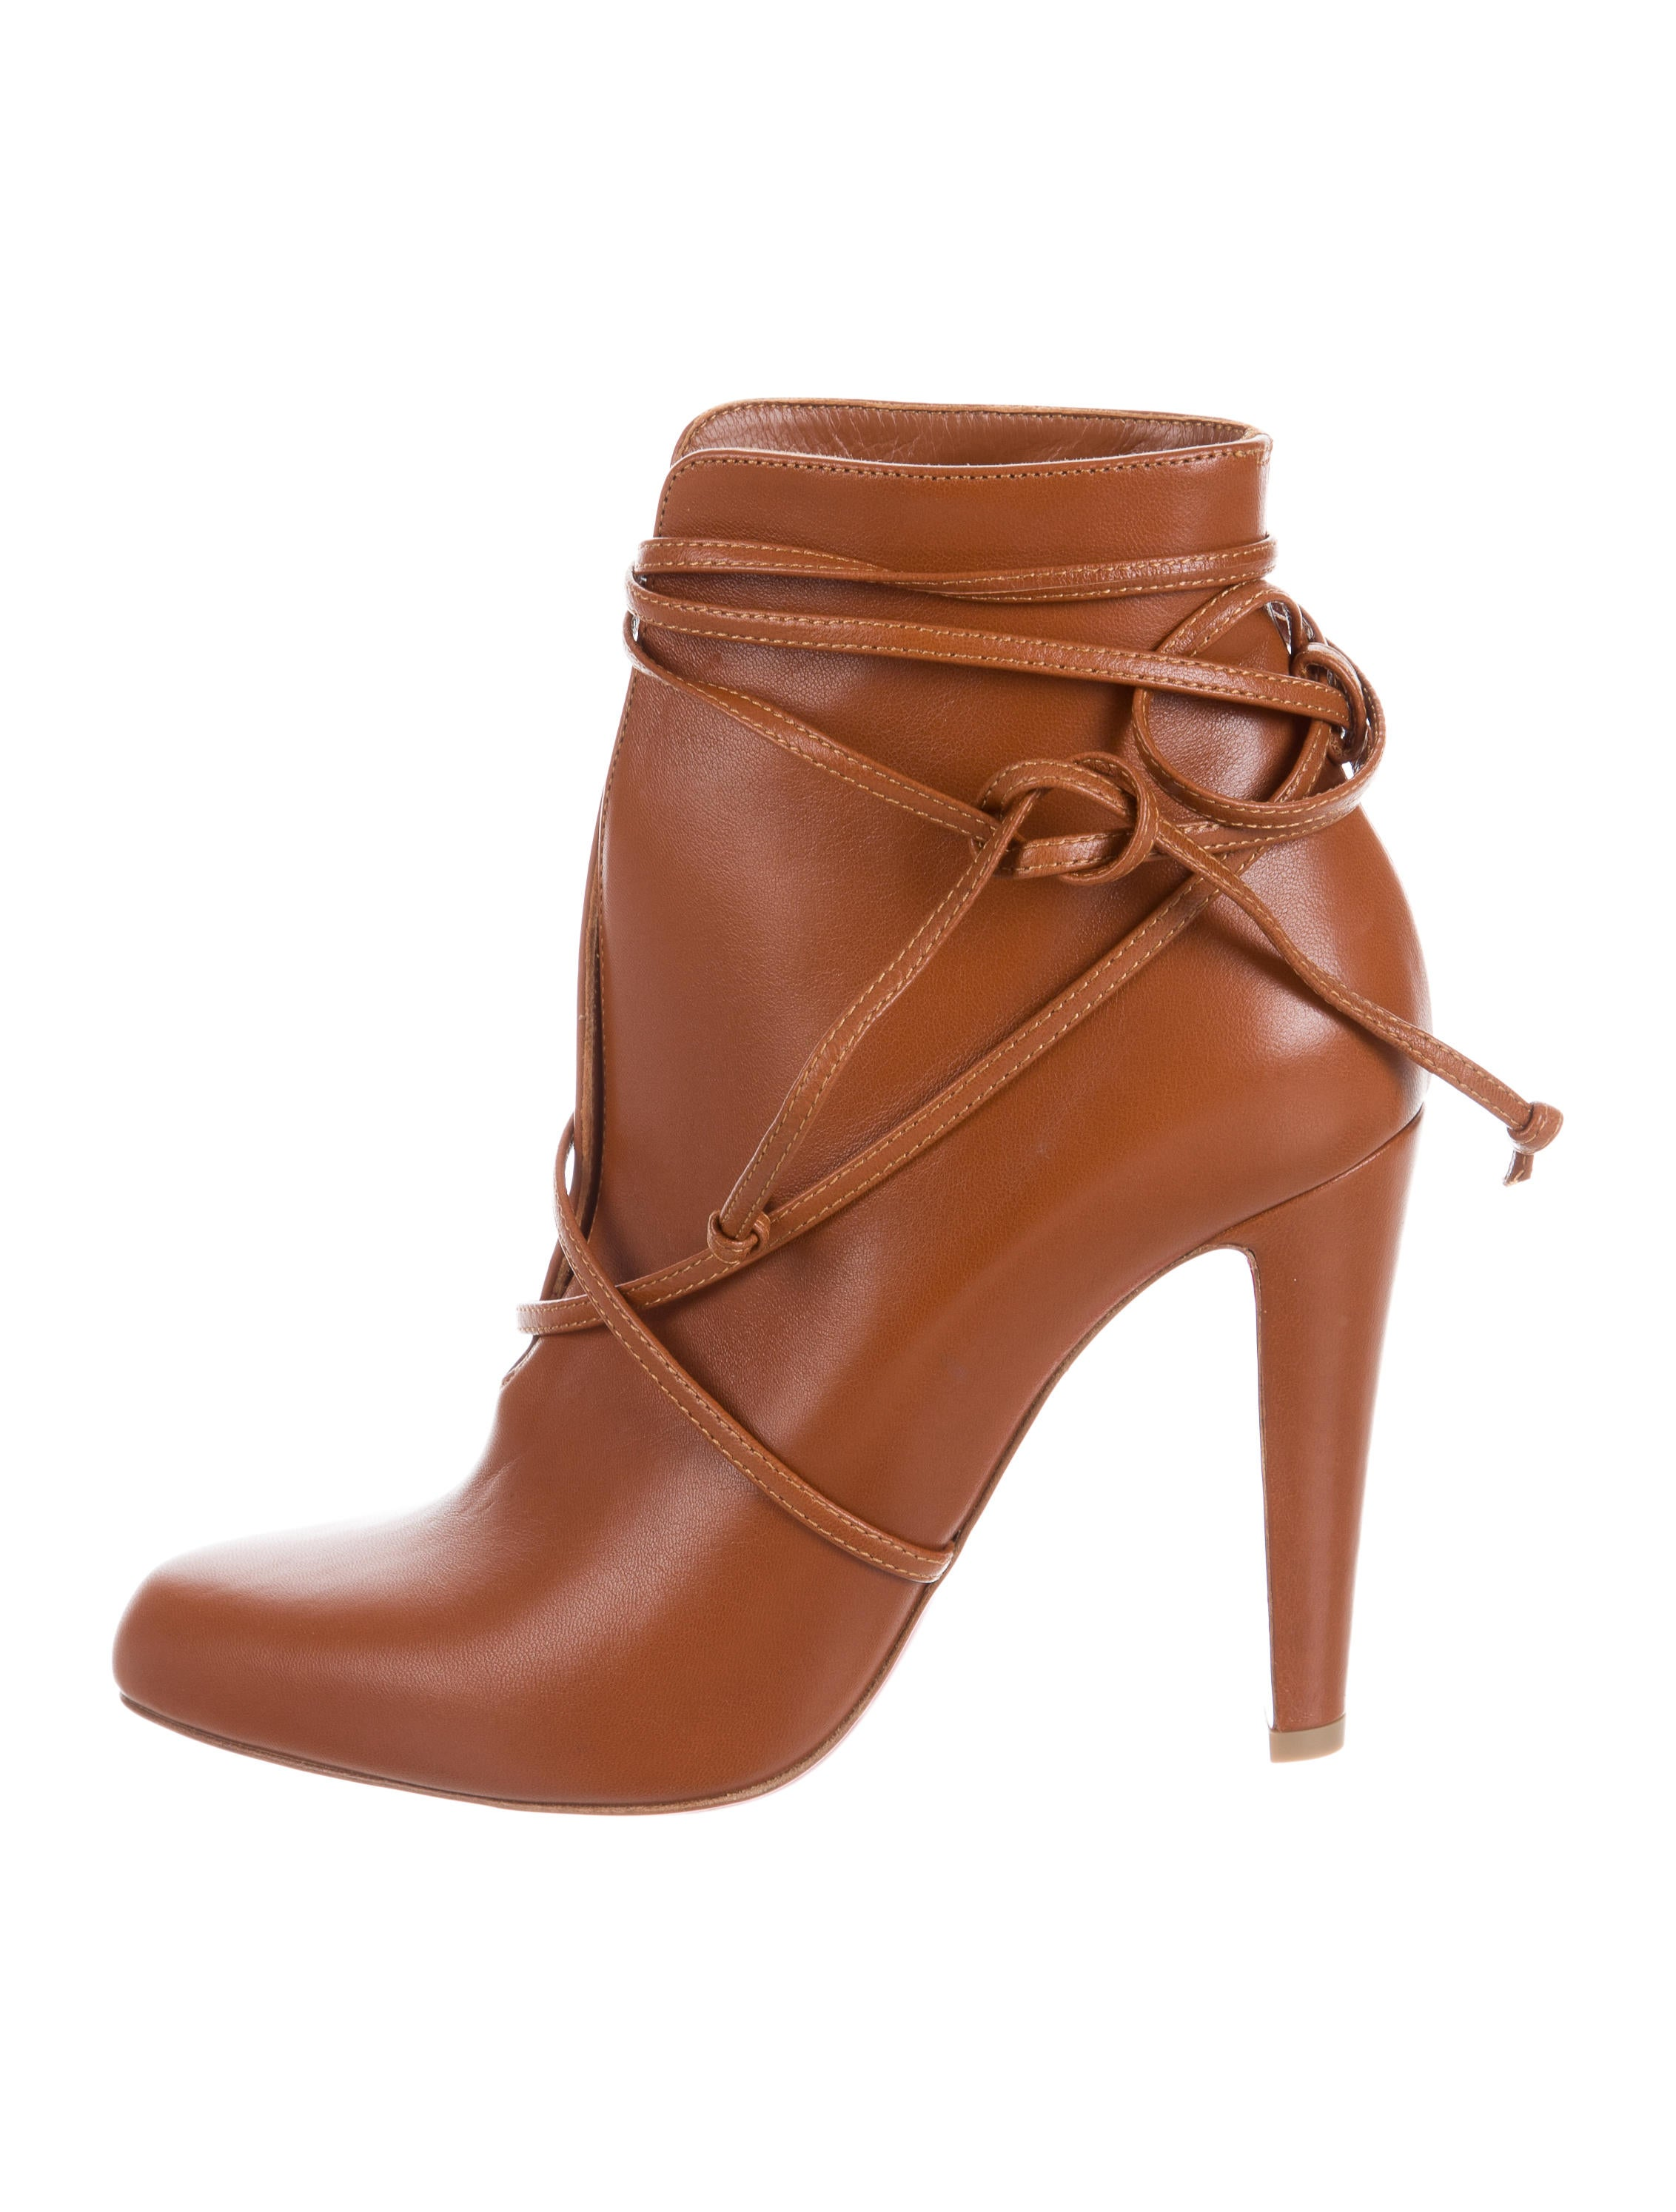 0ccc14ed753 Christian Louboutin 2017 S.I.T Rain 100 Ankle Boots w  Tags - Shoes ...